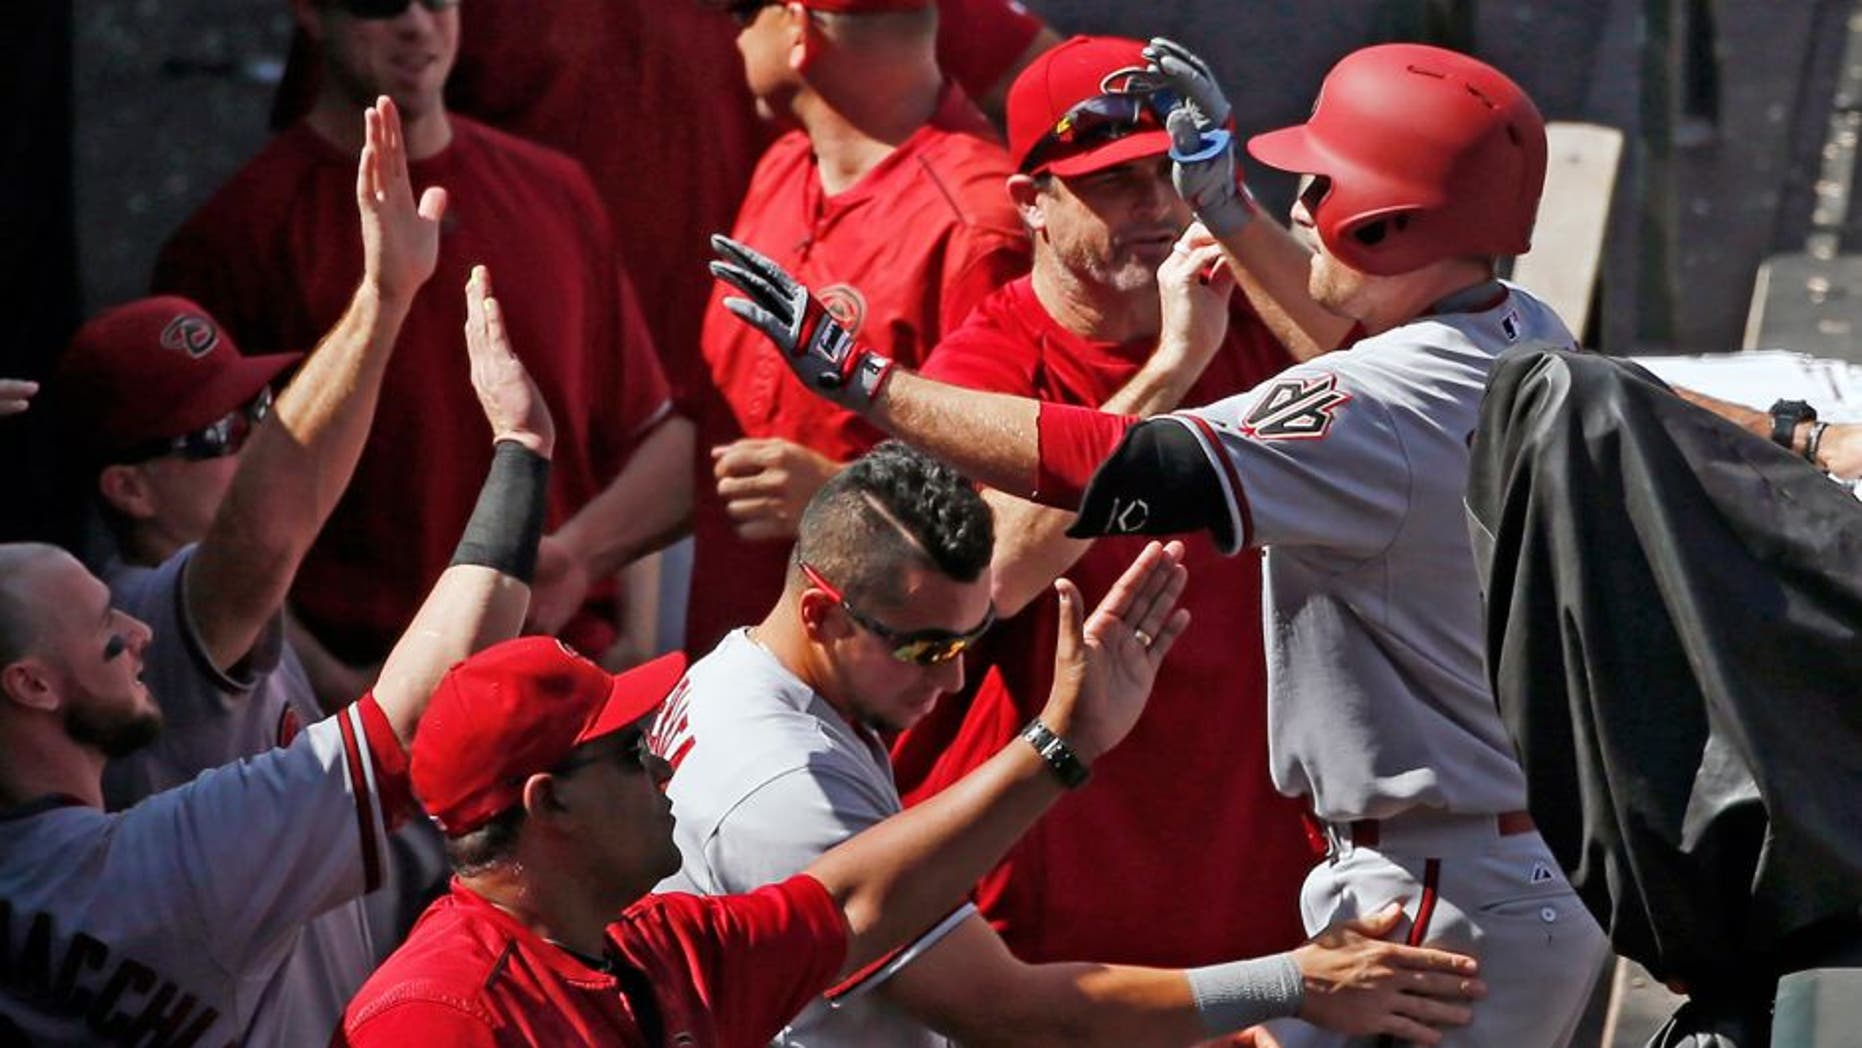 Arizona Diamondbacks' Phil Gosselin is congratulated by teammates as he enters the dugout after hitting a three run home run off the Colorado Rockies during the seventh inning of the first game of a baseball double header Tuesday, Sept. 1, 2015, in Denver. (AP Photo/Jack Dempsey)